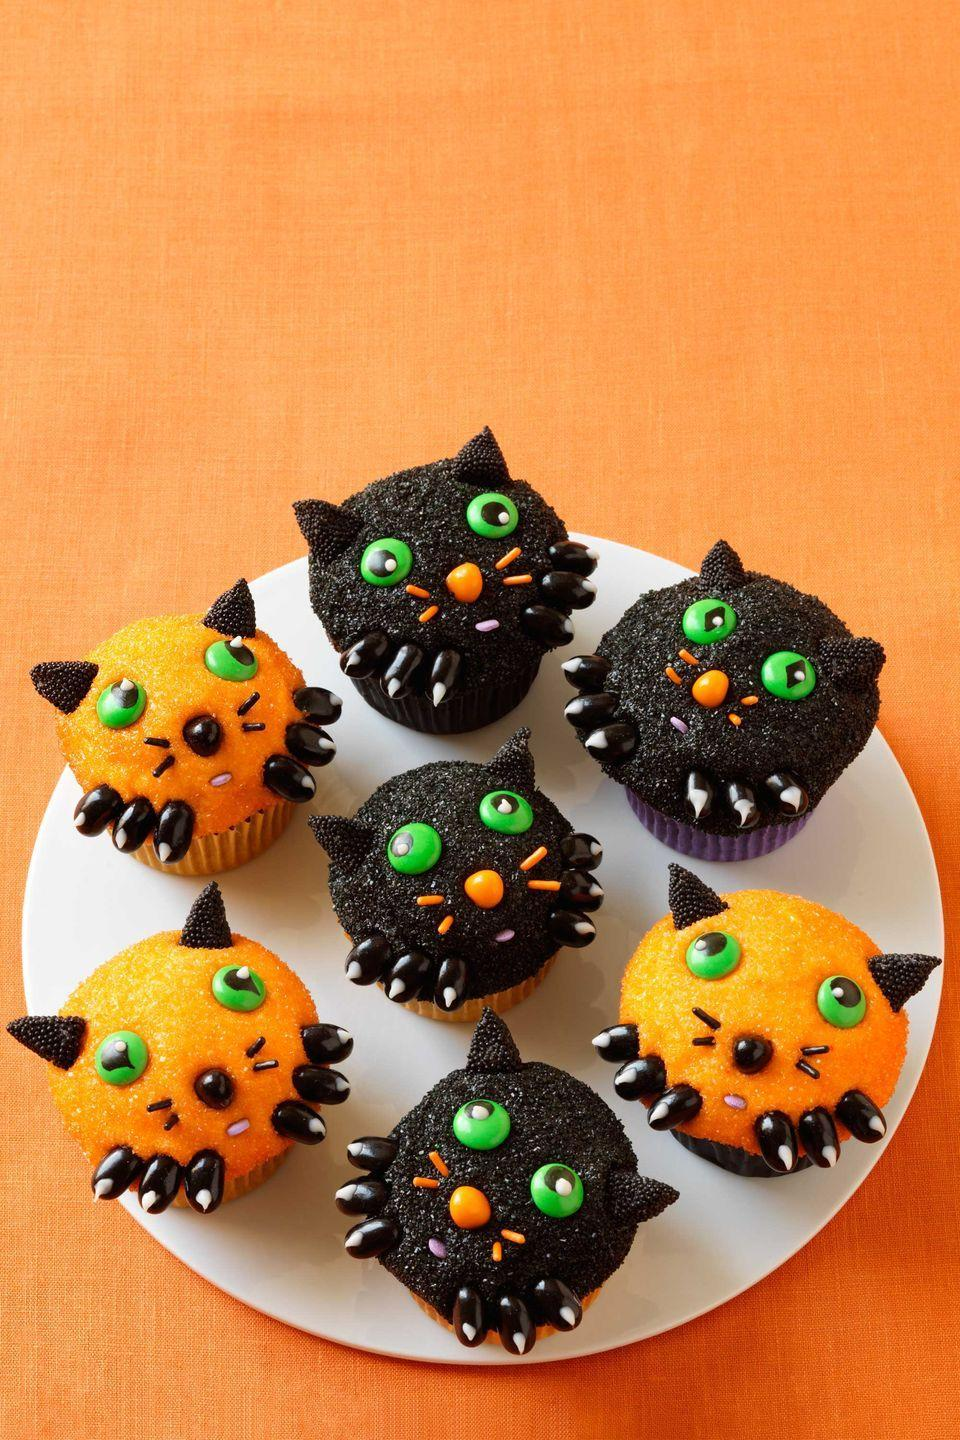 """<p>These cute kitten cupcakes are perfect for a fun Halloween bash full of younger kids.</p><p><a href=""""https://www.womansday.com/food-recipes/food-drinks/recipes/a11375/kitten-cupcakes-recipe-wdy1012/"""" rel=""""nofollow noopener"""" target=""""_blank"""" data-ylk=""""slk:Get the Kitten Cupcakes recipe."""" class=""""link rapid-noclick-resp""""><em>Get the Kitten Cupcakes recipe.</em></a></p>"""